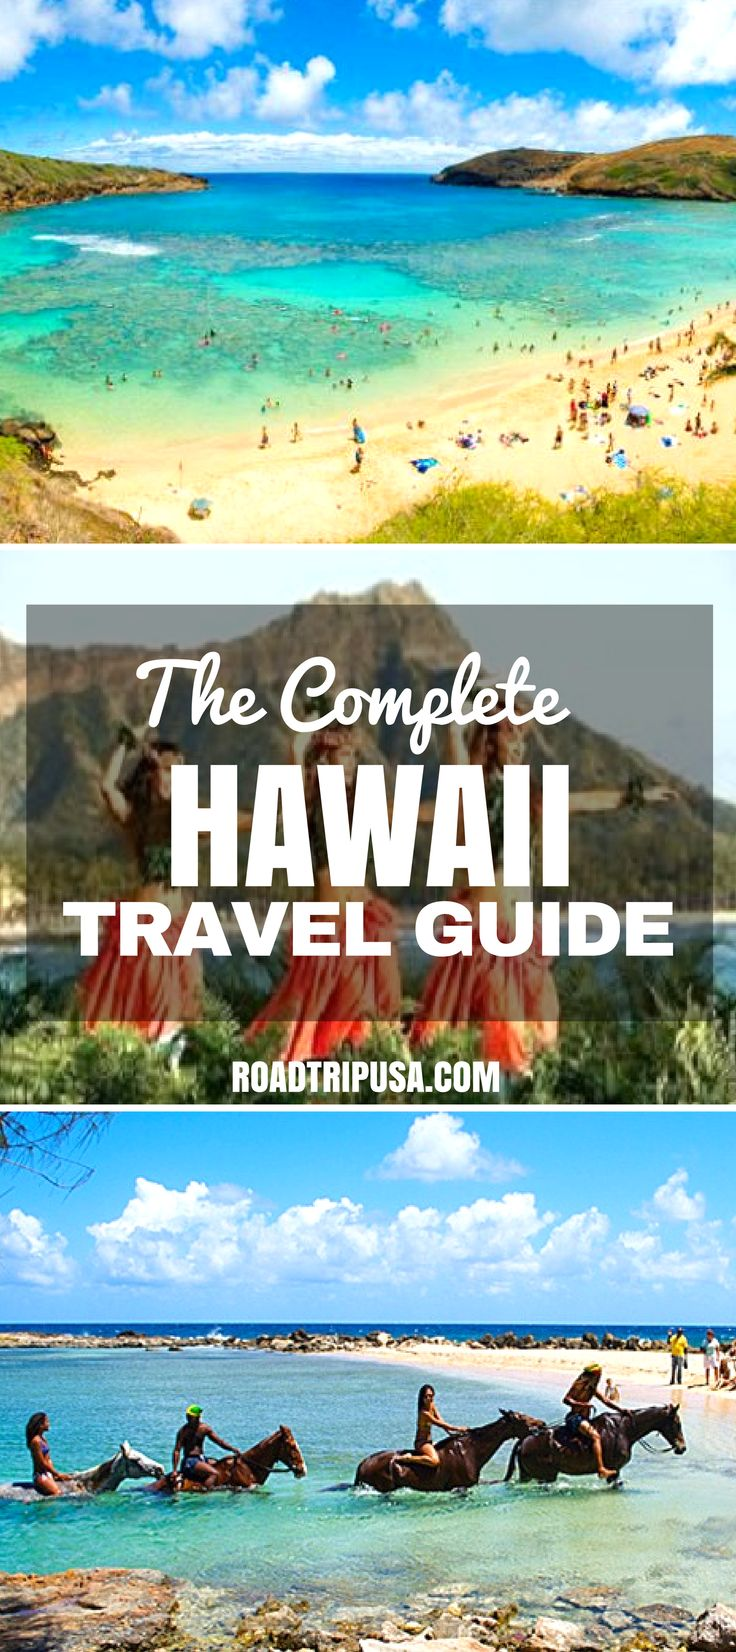 Travel tips to help plan your visit to Hawaii. Must see places, top attractions, what you should do, where to stay and more.  Visit Waikiki, Honululu, Hanuauma Bay, the Na Pali Coastline, Hawaii Volcanoes National Park and more.